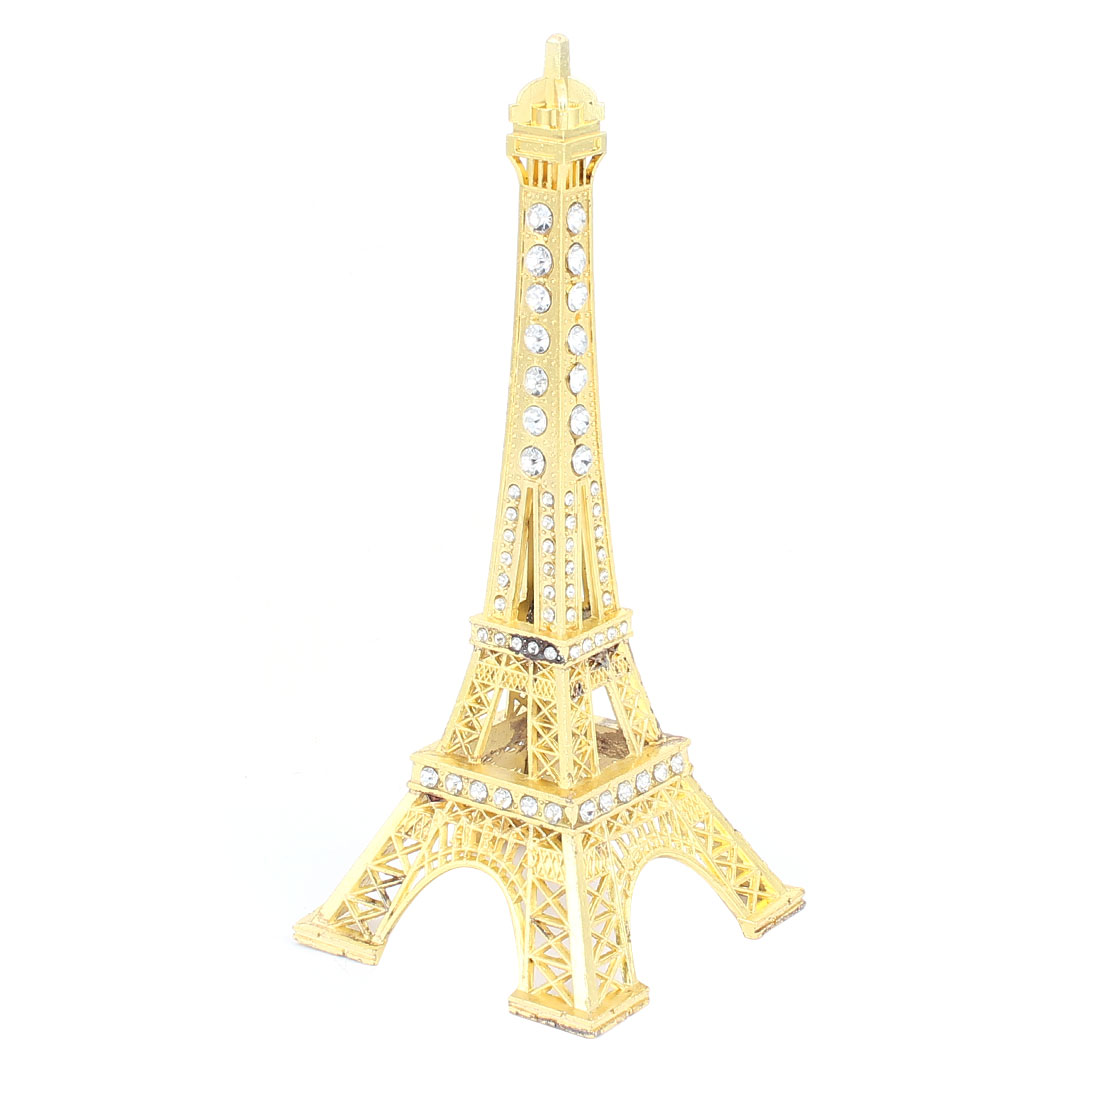 "Rhinestone Detailing Mini France Paris Eiffel Tower Sculpture Model Ornament 7"" 18cm Height Yellow"